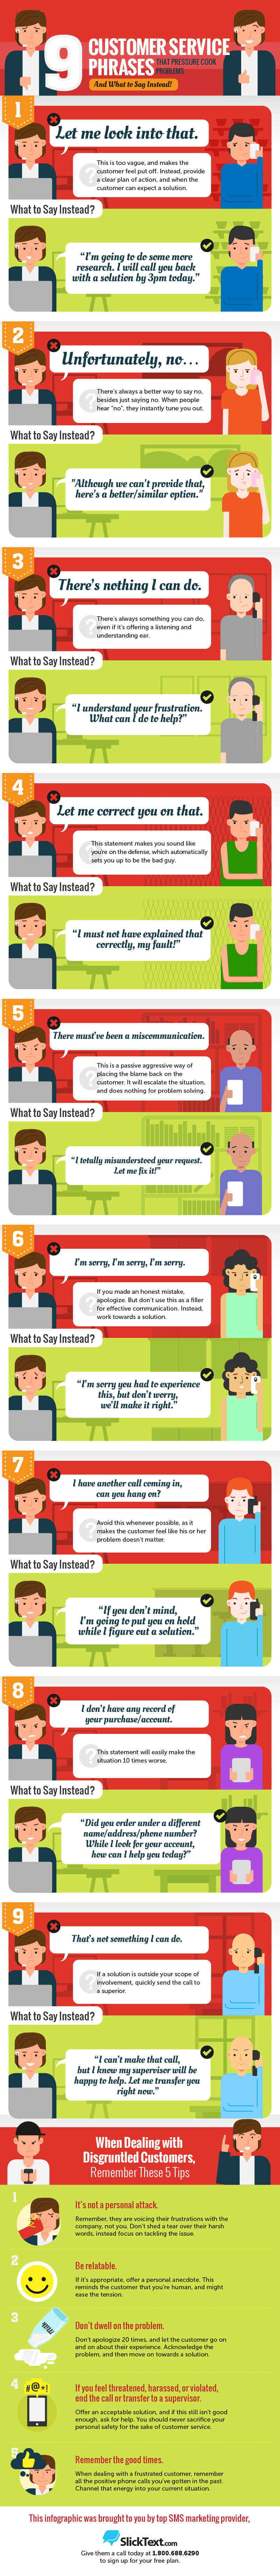 9 customer service phrases that pressure cook problems and what to